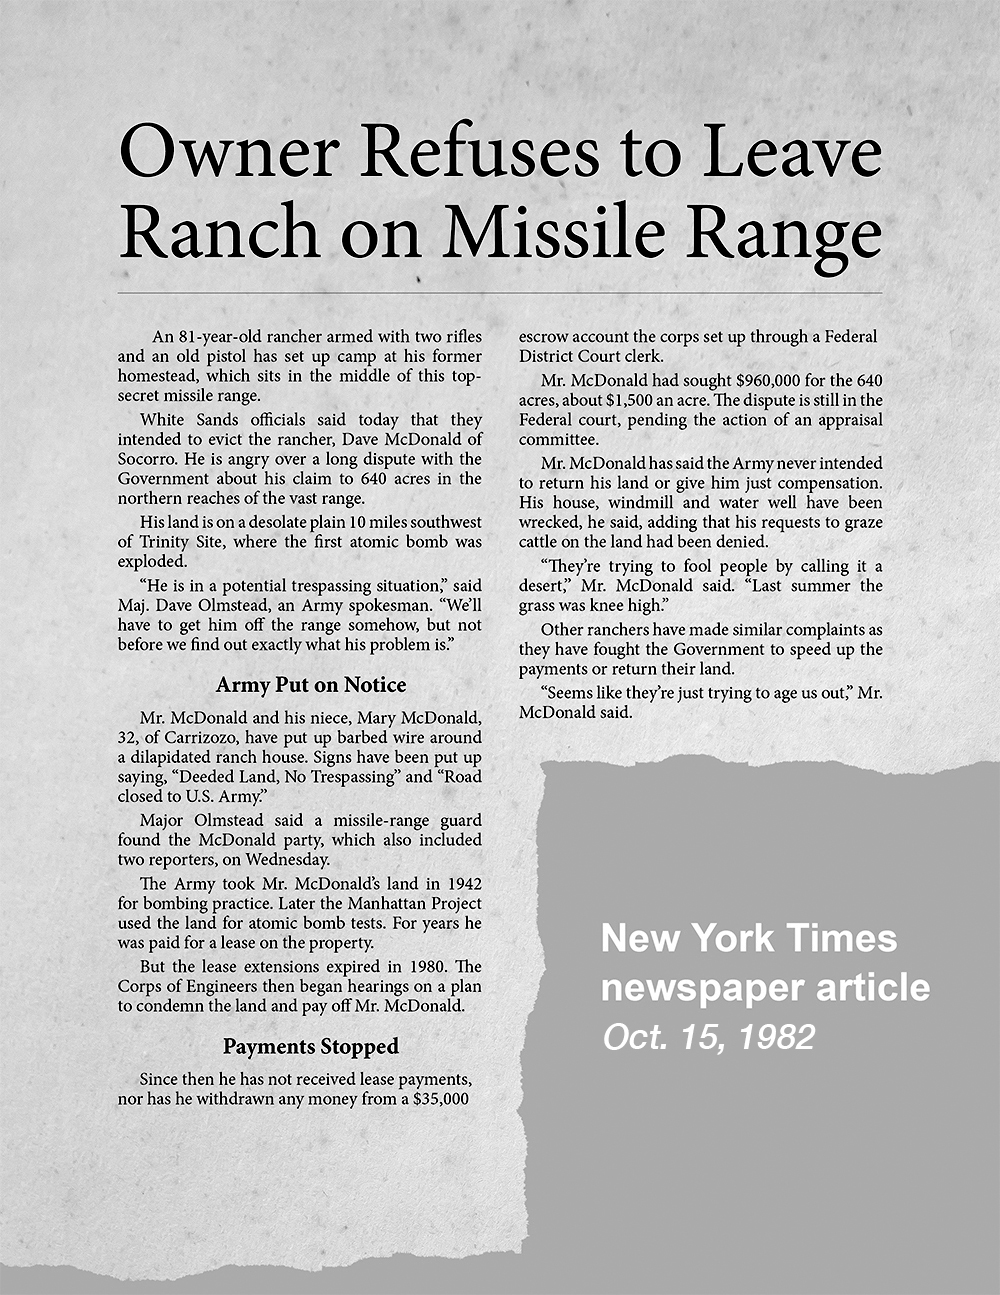 1982 New York Times Article titled, Owner Refuses to Leave Ranch on Missile Range